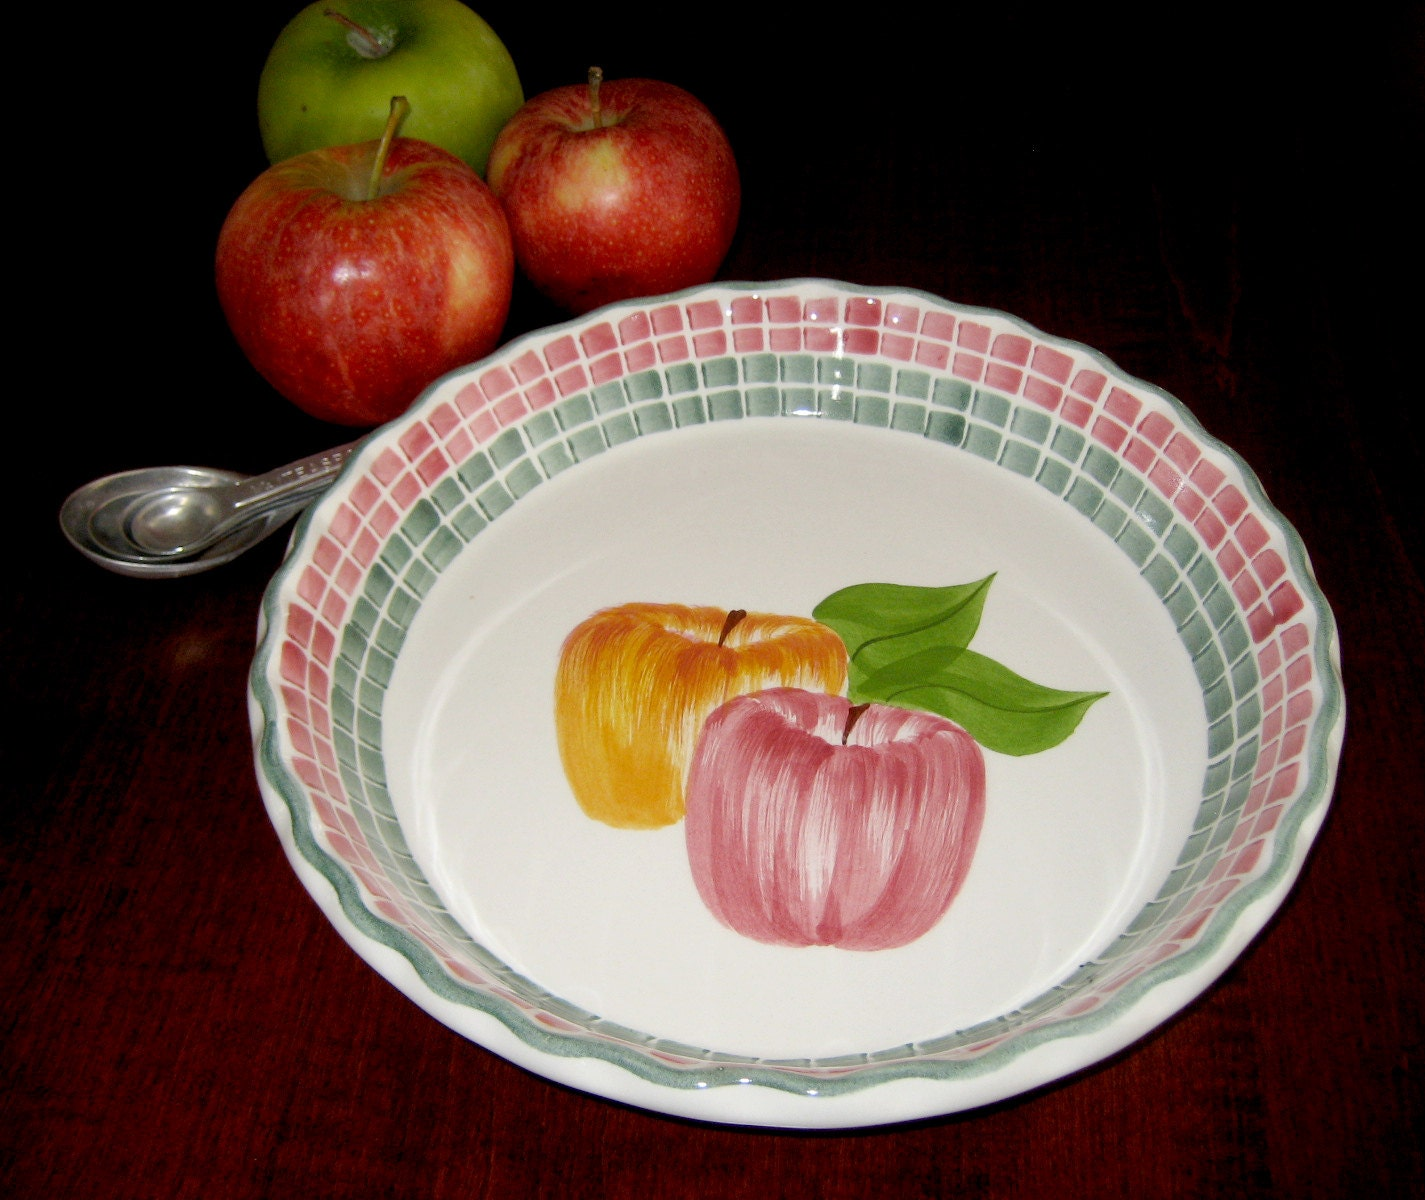 Apple Pie Plate Artist Signed By Laurie Gates Laurie Gates Los